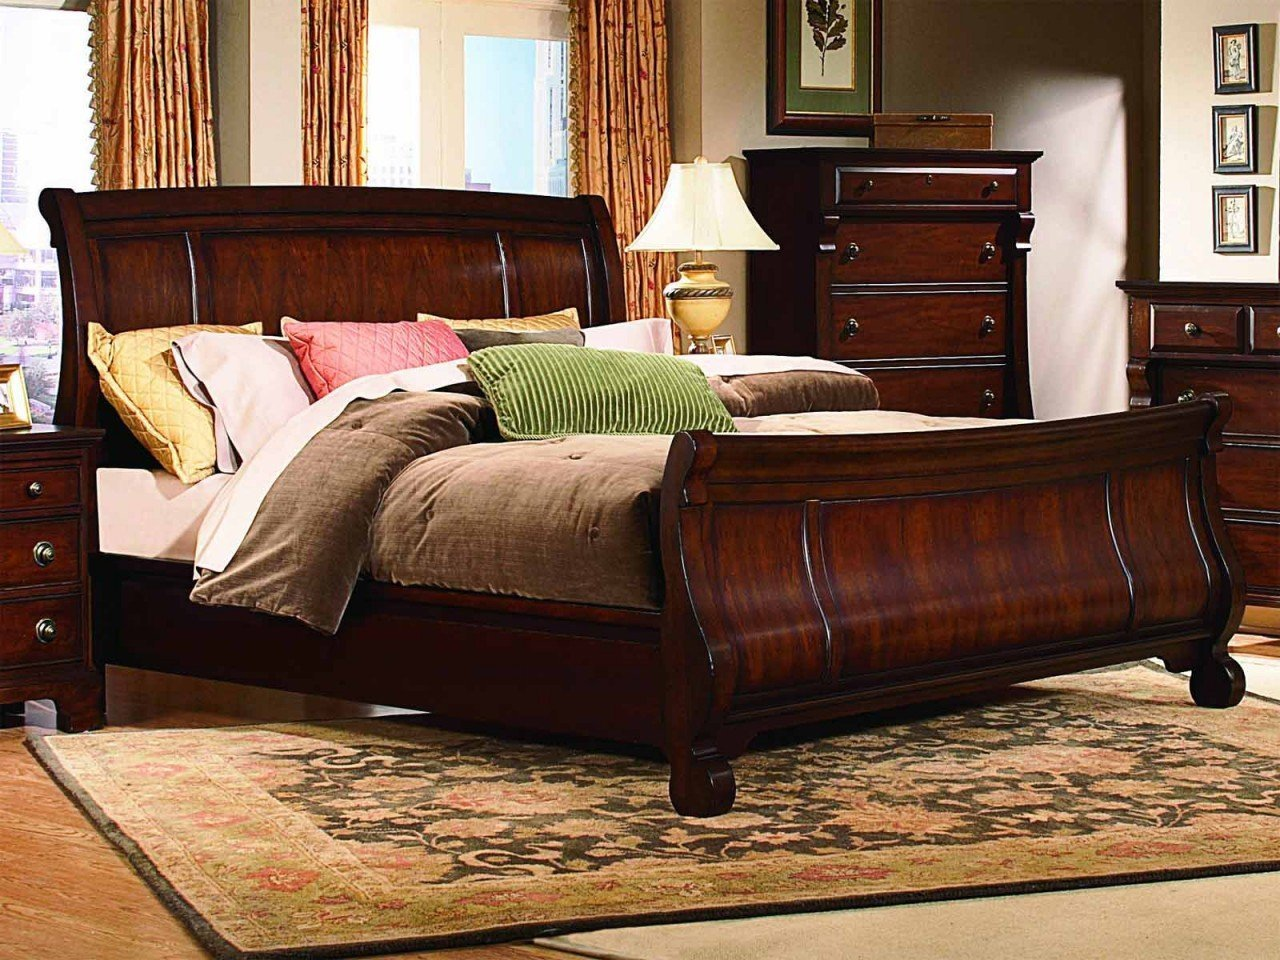 Queen sleigh bedroom set home furniture design for Bedroom furniture sets queen